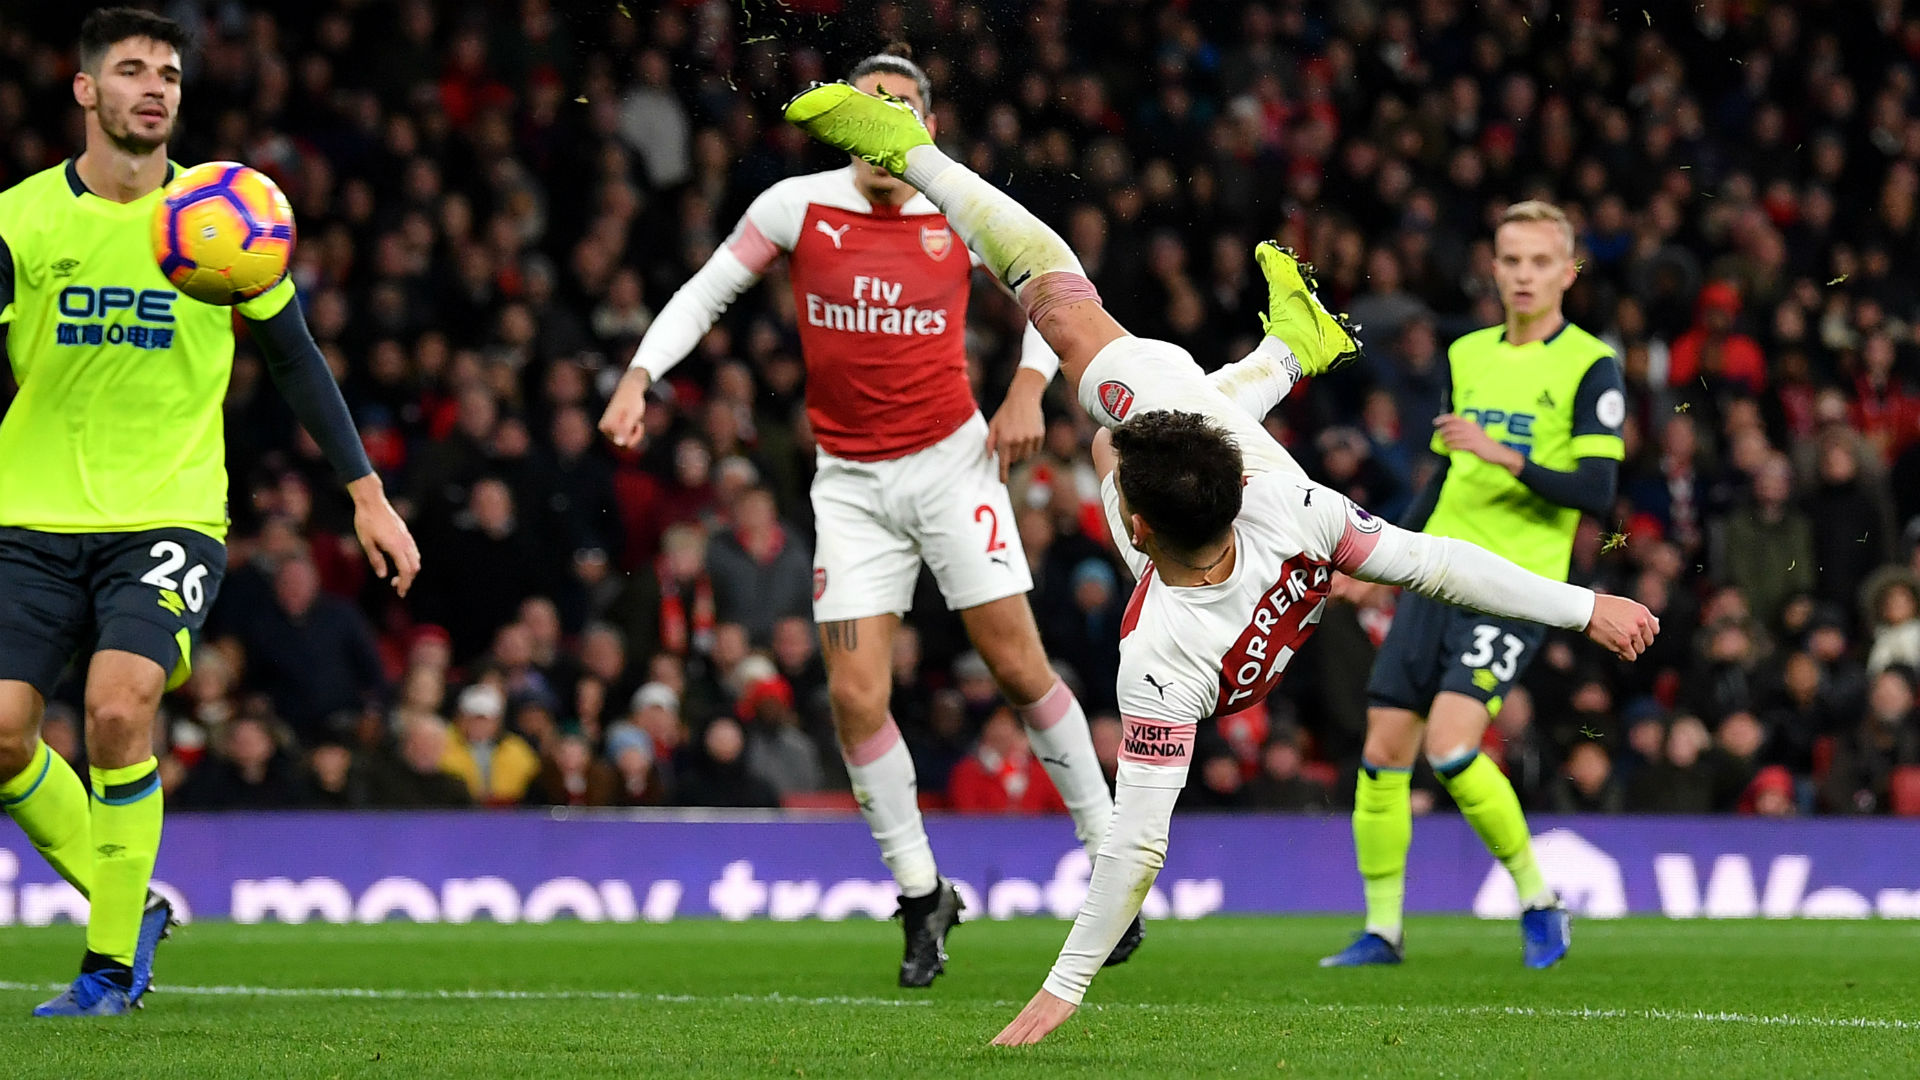 He wants to be like Aubameyang and Lacazette! - Xhaka hails match-winner Torreira